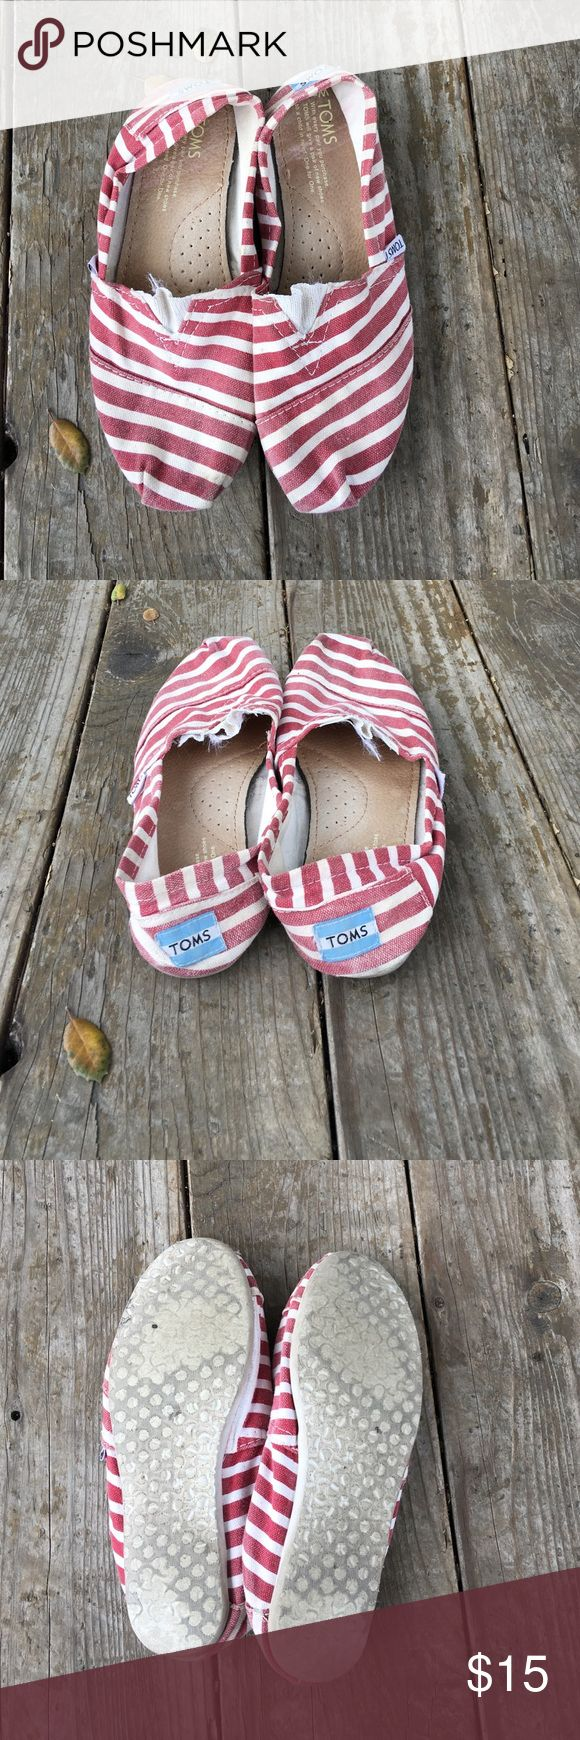 TOMS (287) Signs of wear, scuff marks, discoloration,  stains, no holes or tears TOMS Shoes Flats & Loafers